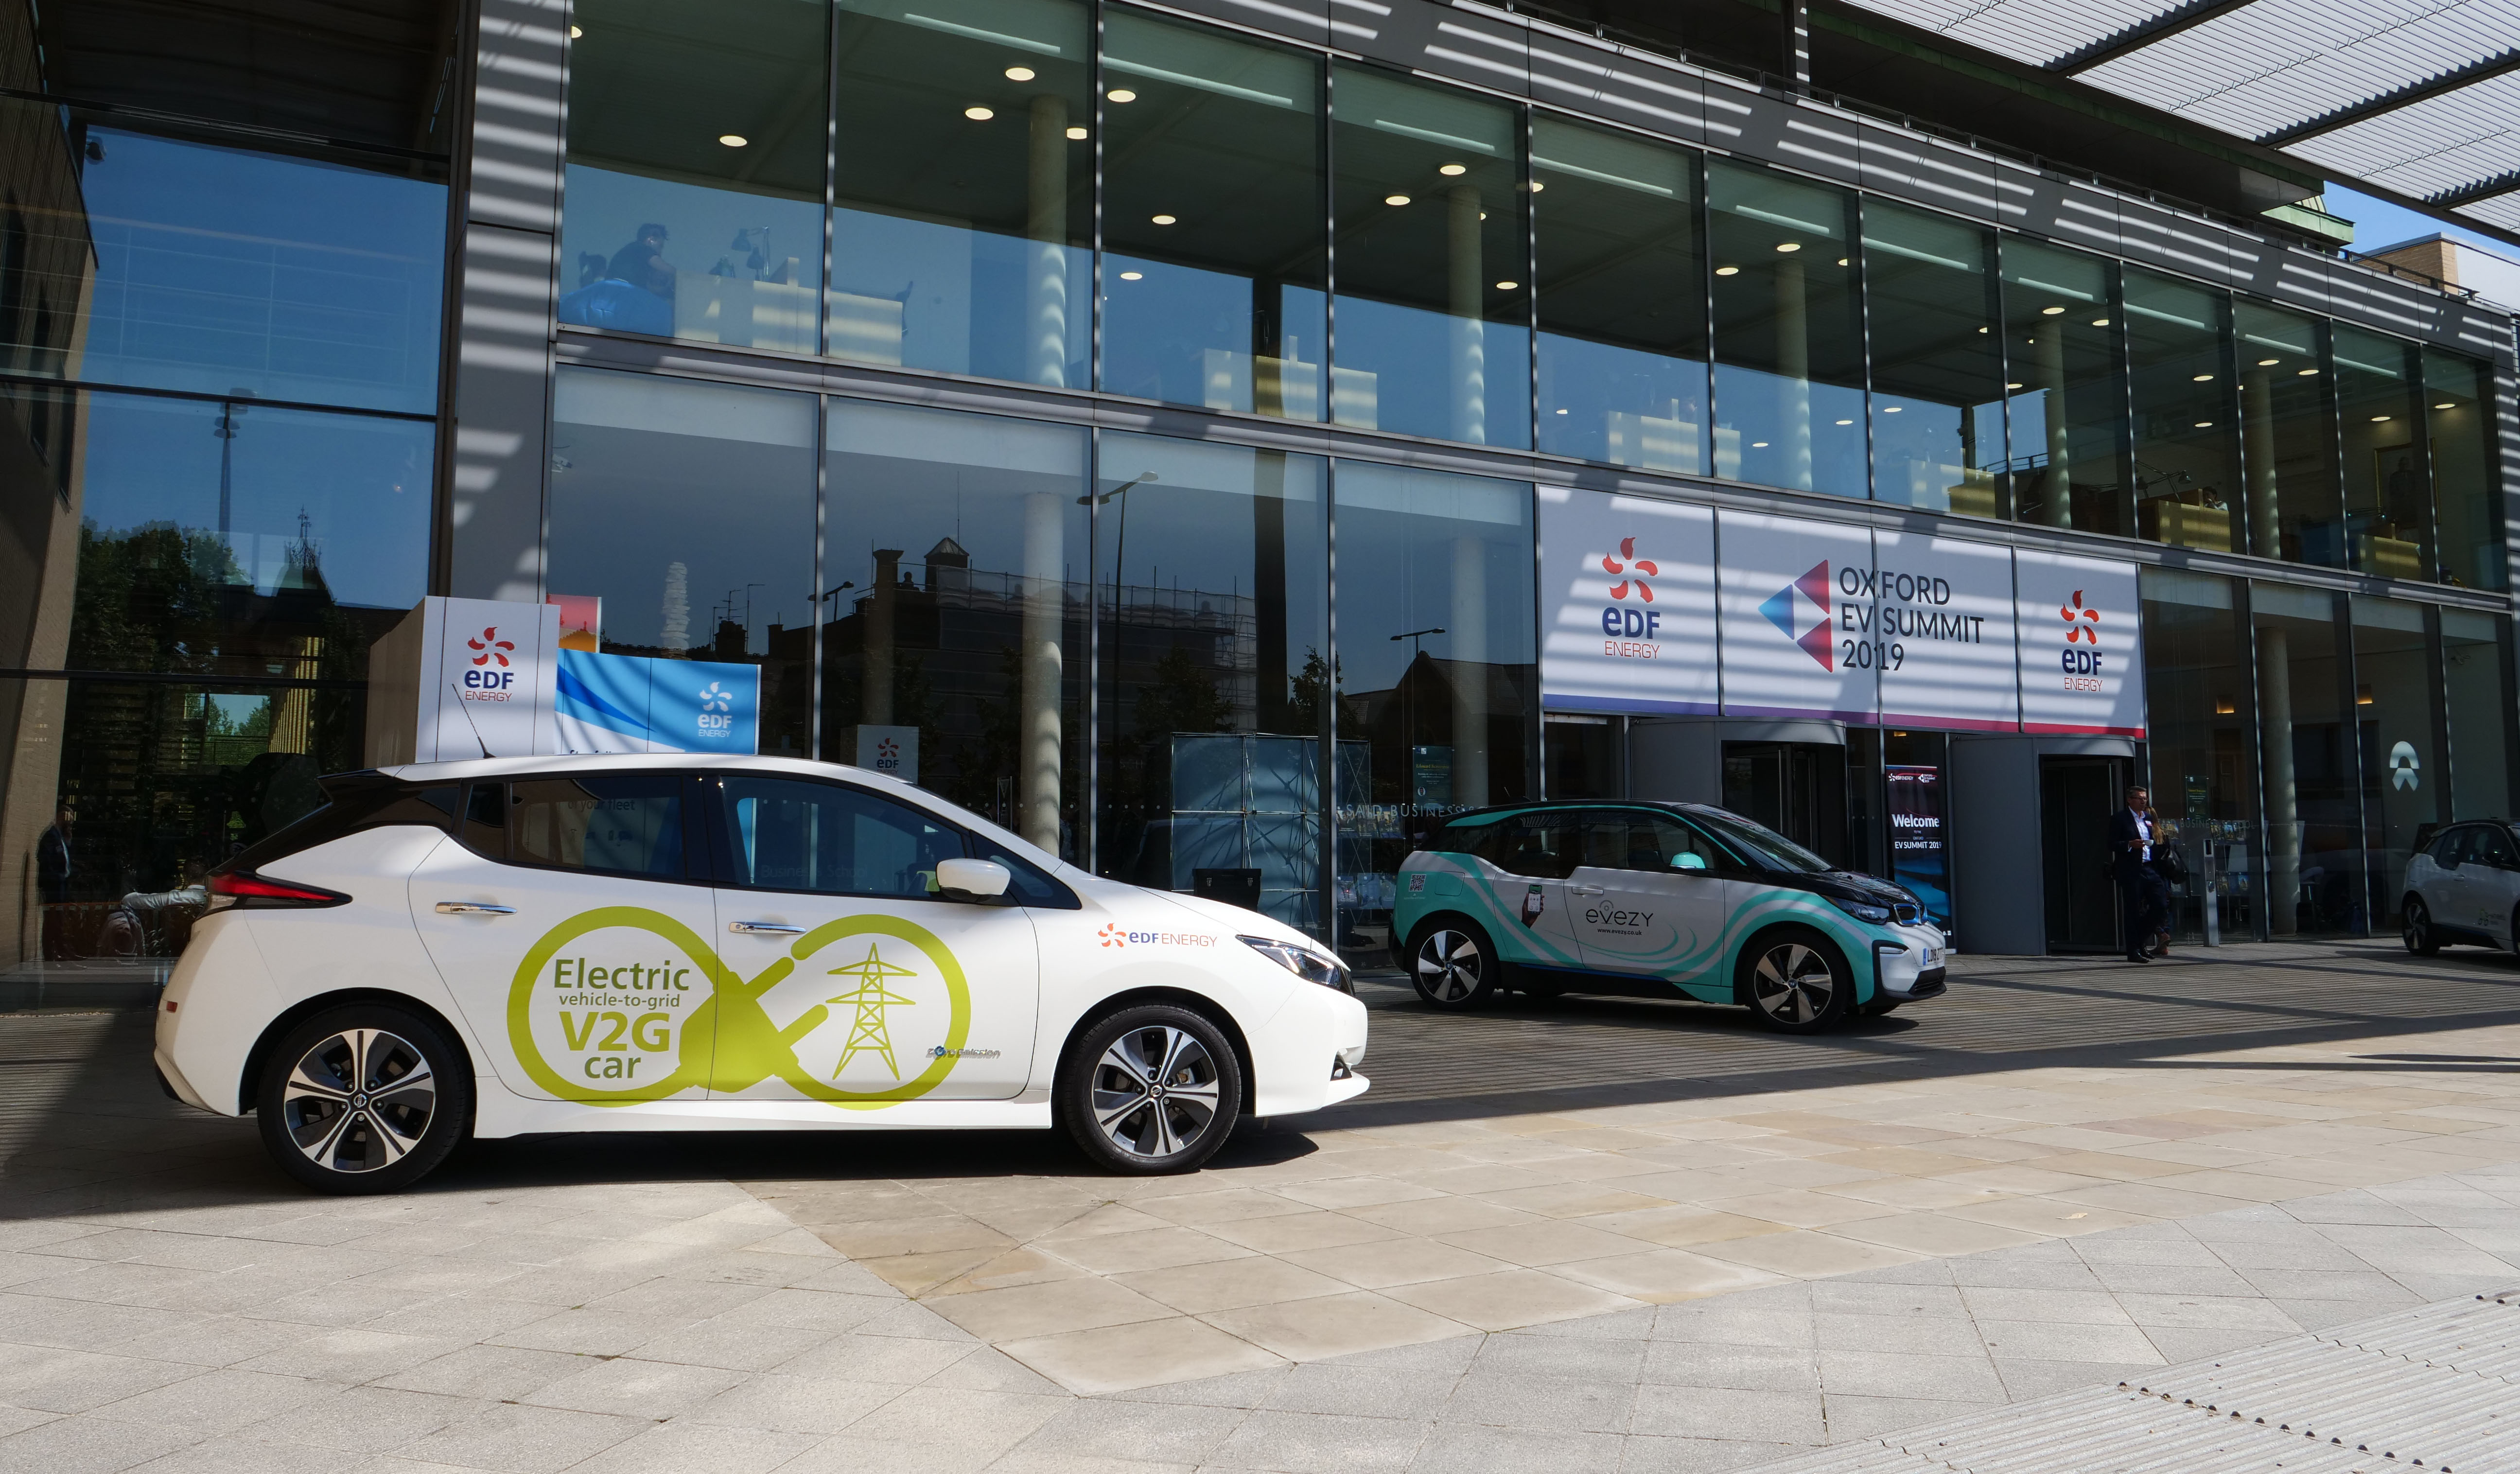 EDF Energy's Vehicle to Grid (V2G) car on show.